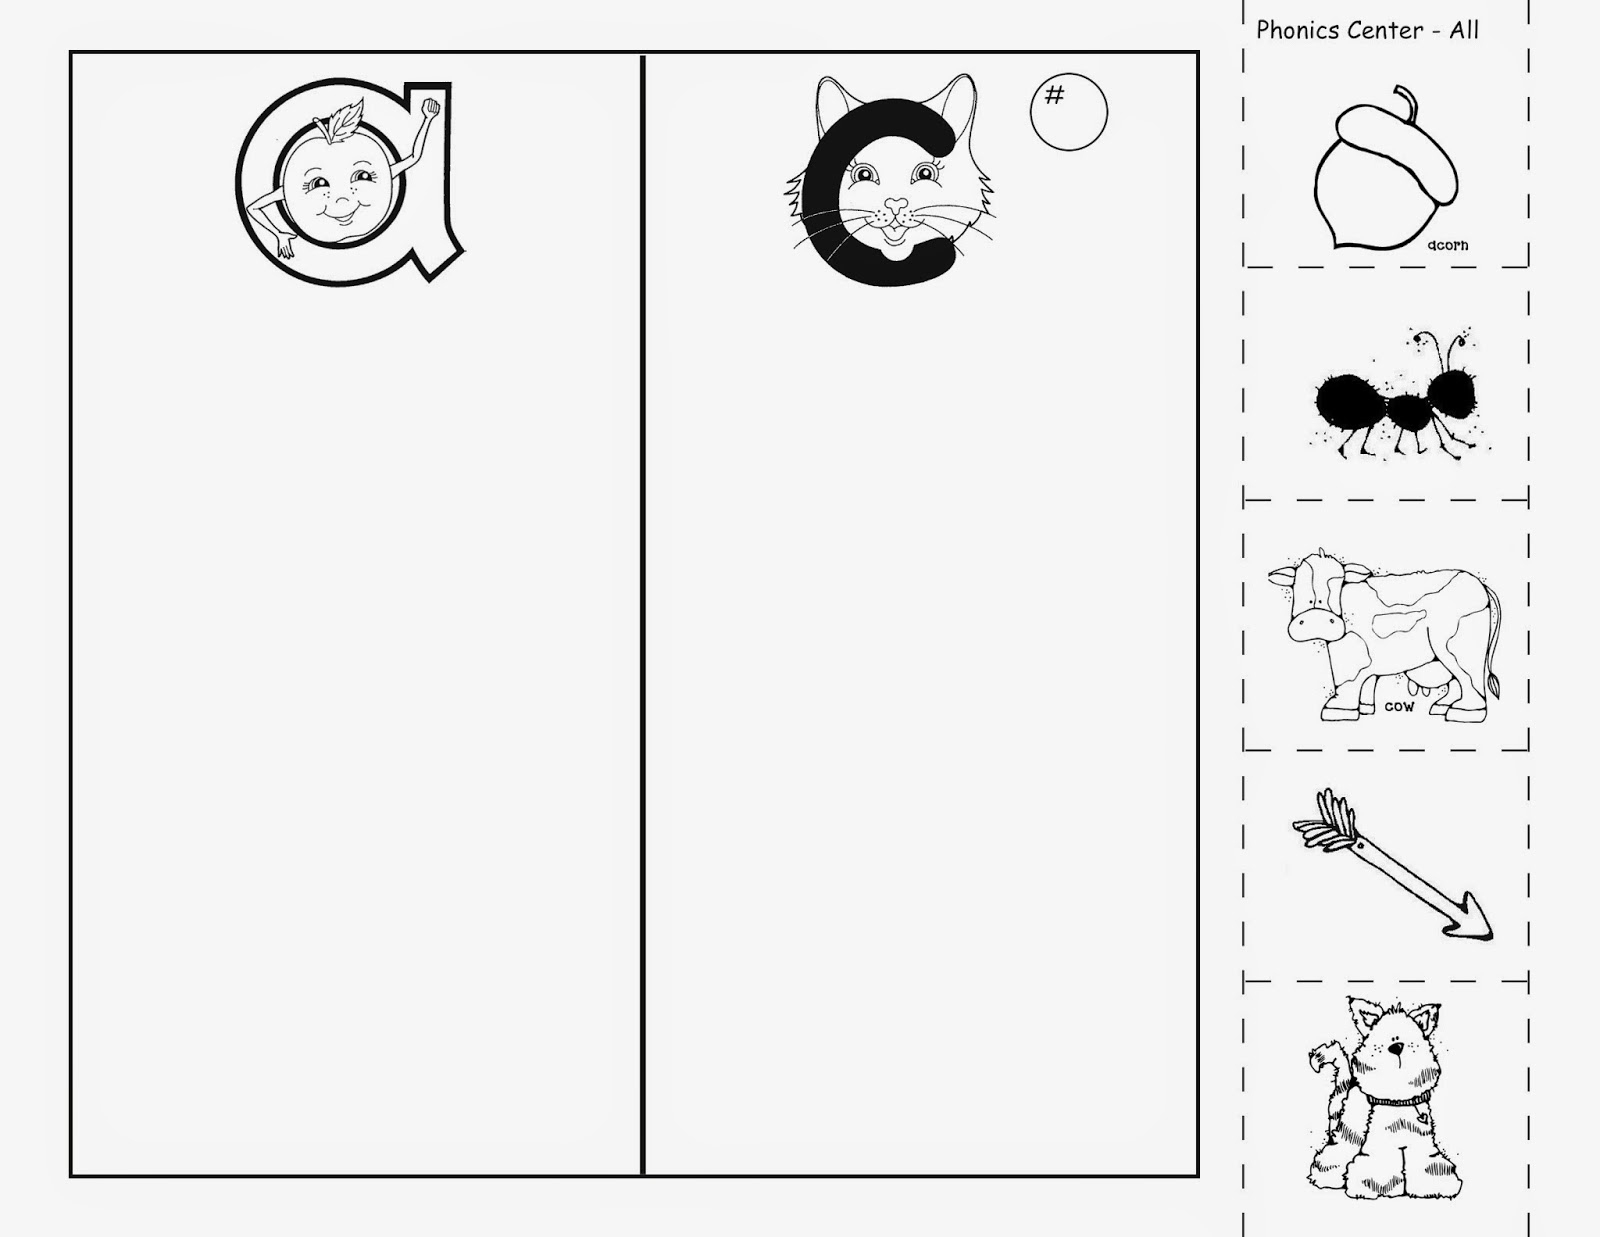 Free Printable Letterland Alphabet Worksheets | Download Them Or Print - Letterland Worksheets Free Printable